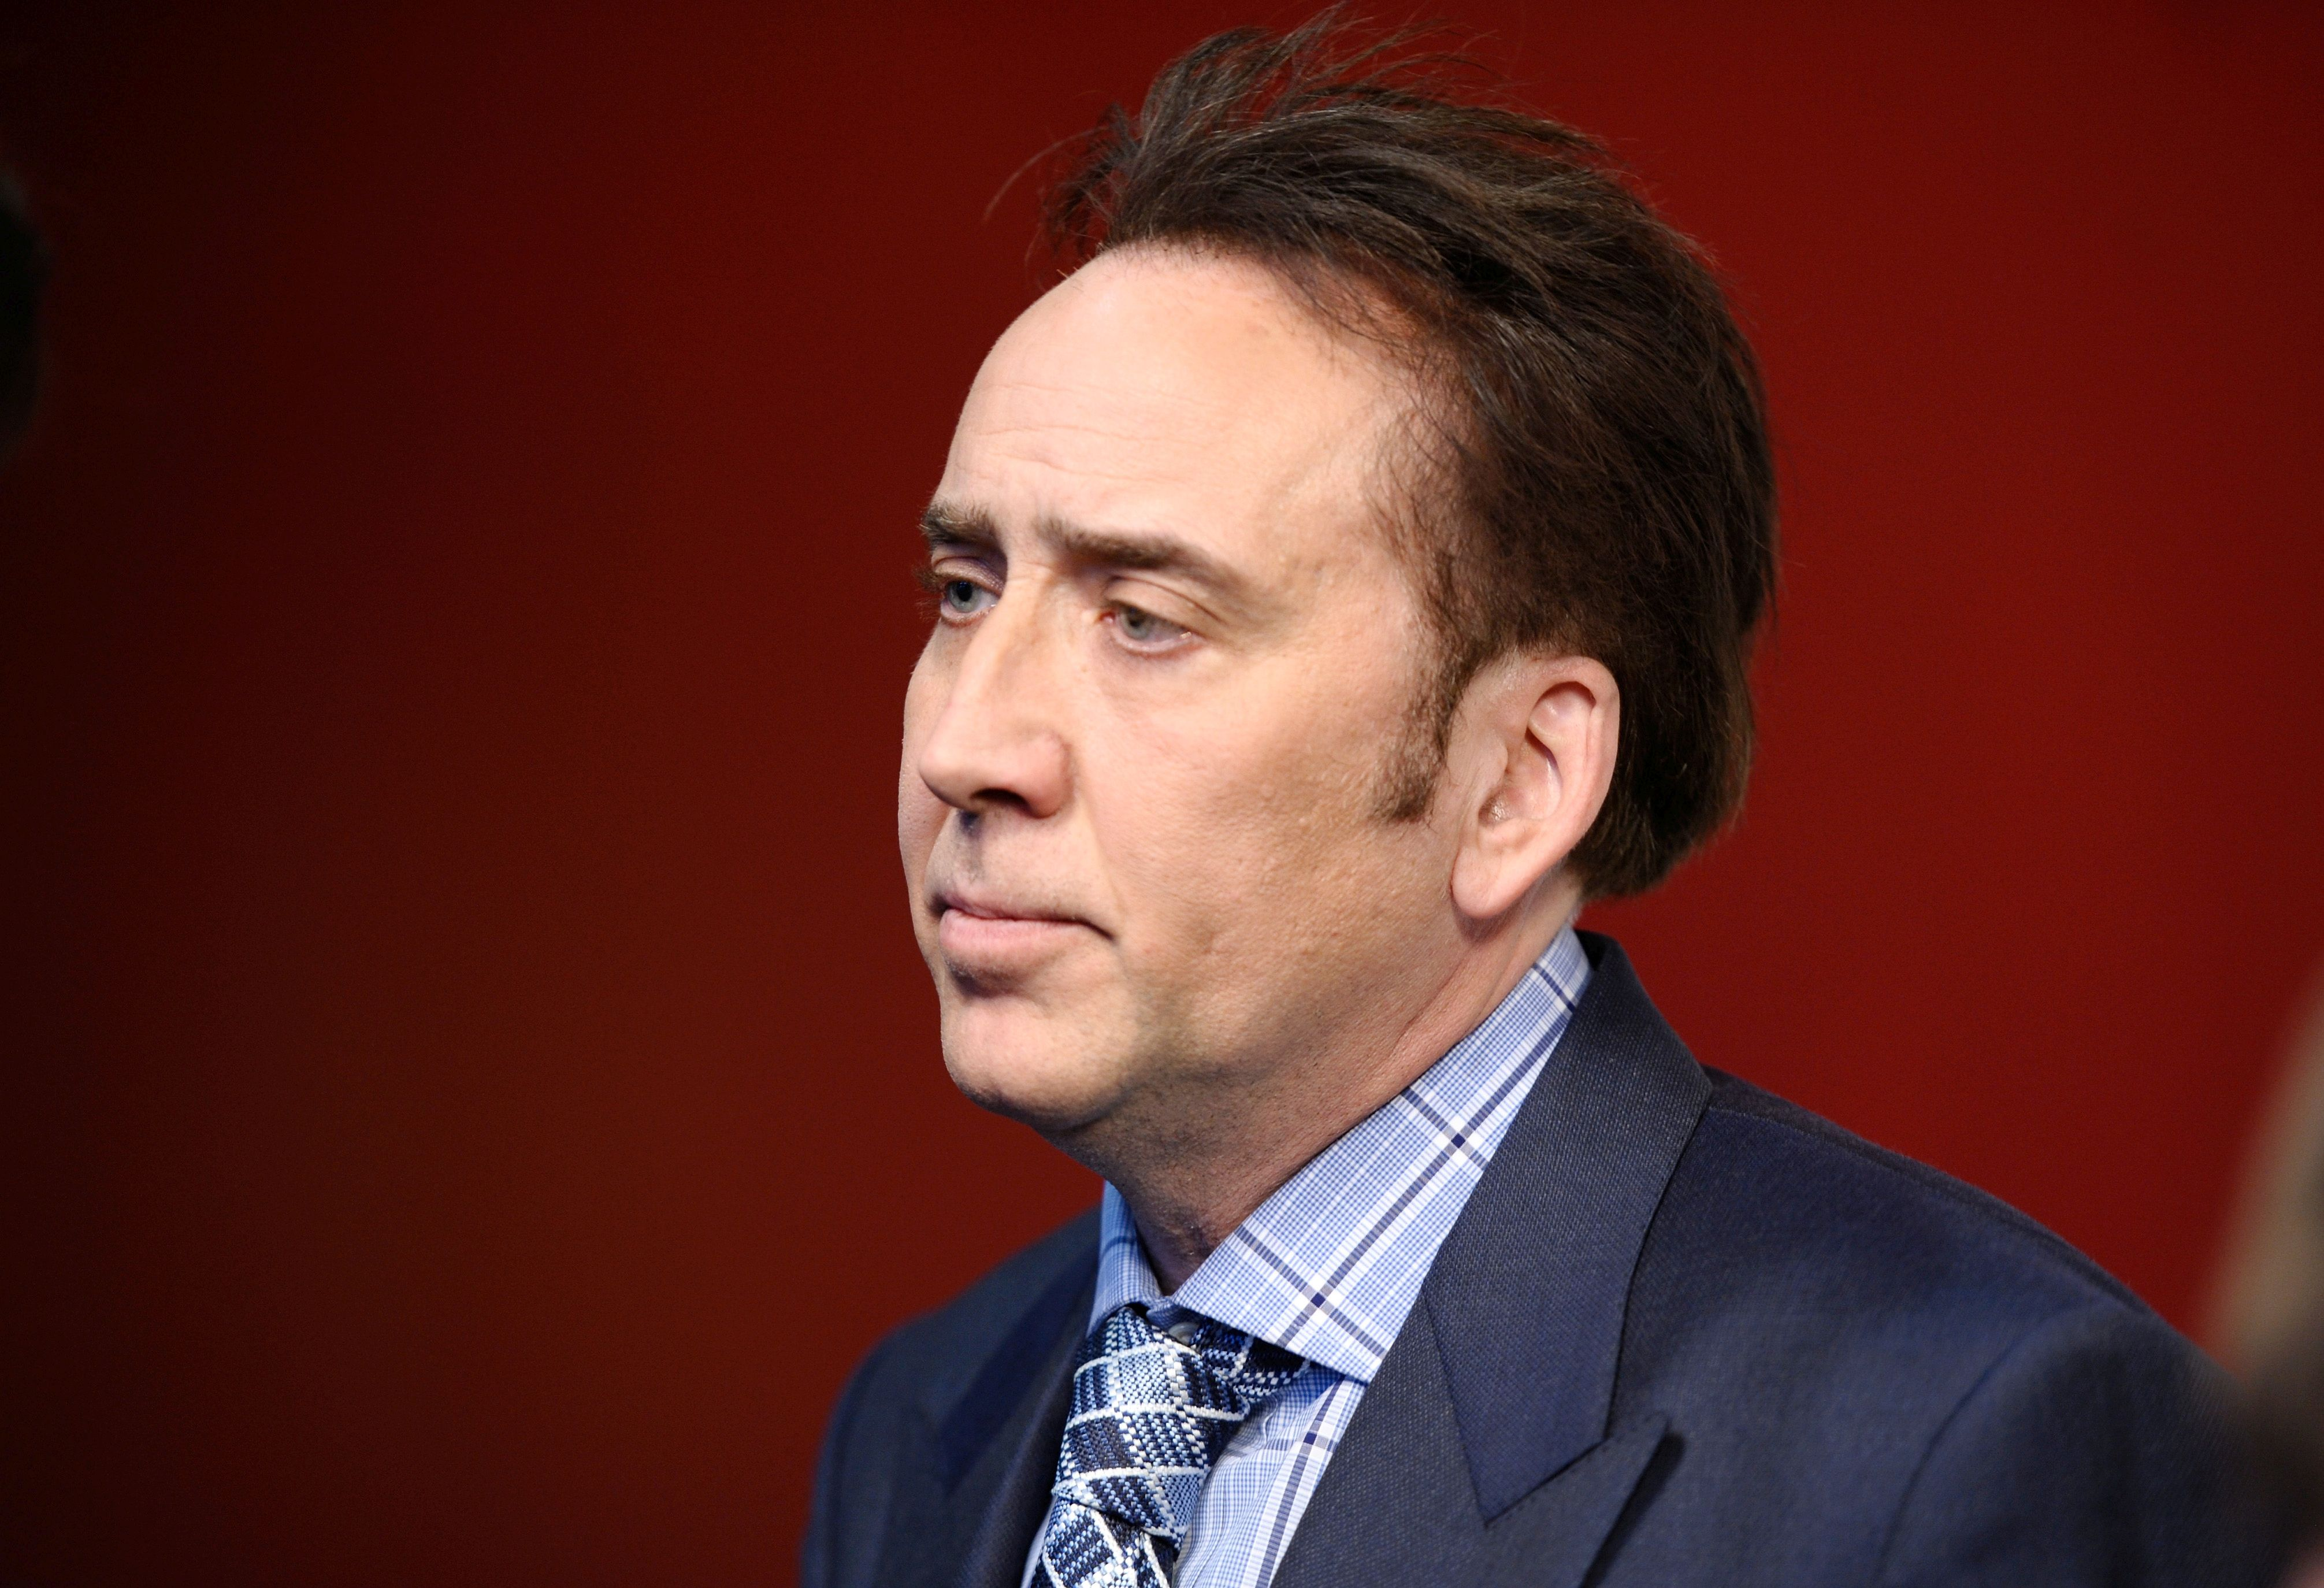 """Actor Nicolas Cage attends the """"Joe"""" screening hosted by Lionsgate and Roadside Attractions with The Cinema Society at Landmark Sunshine Cinema on April 9, 2014, in New York City. (Ilya S. Savenok/Getty Images)"""